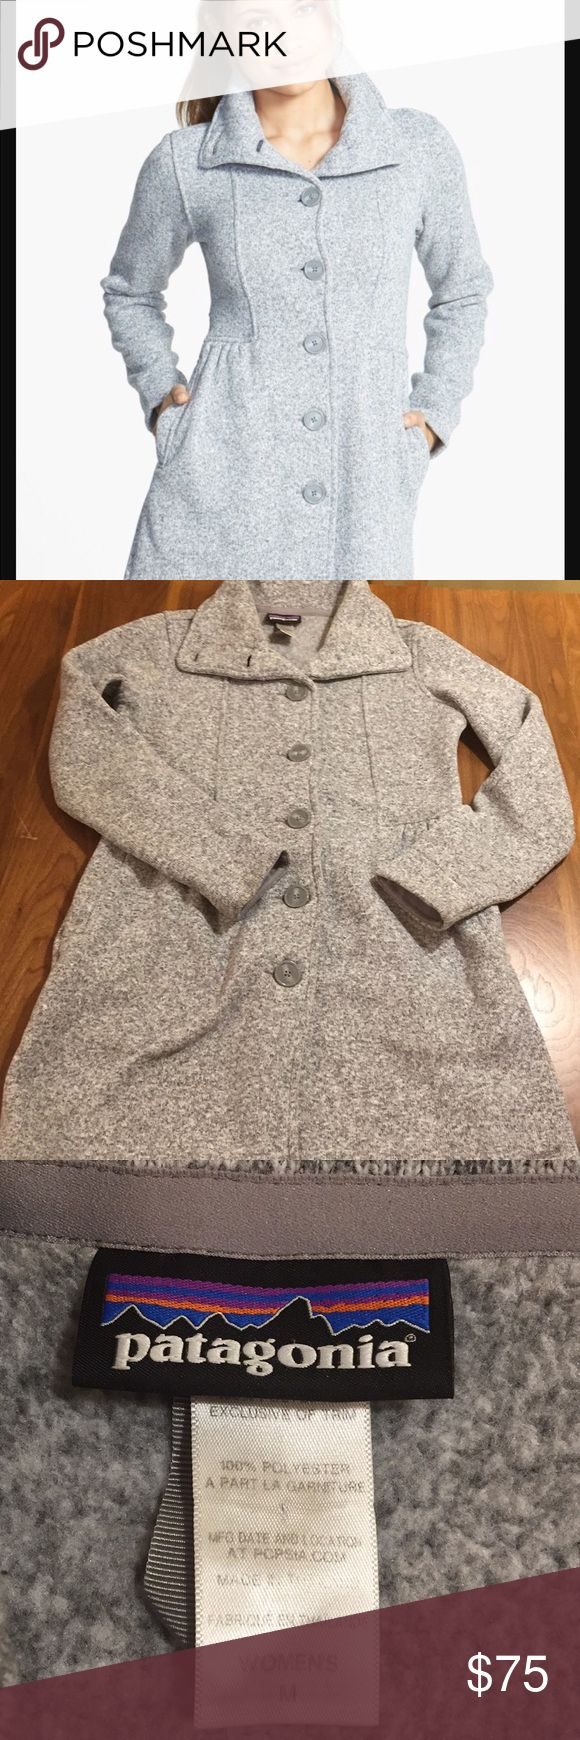 """Patagonia Better Sweater Coat Heathered grey. A tall cozy collar and shape-defining shirred waistband style a city-smart coat designed with a polished sweater-knit exterior and heat-retaining fleece interior. Front button closure. Double-layer collar. Side pockets.19"""" across bust. 32"""" length. Excellent condition. Patagonia Sweaters"""